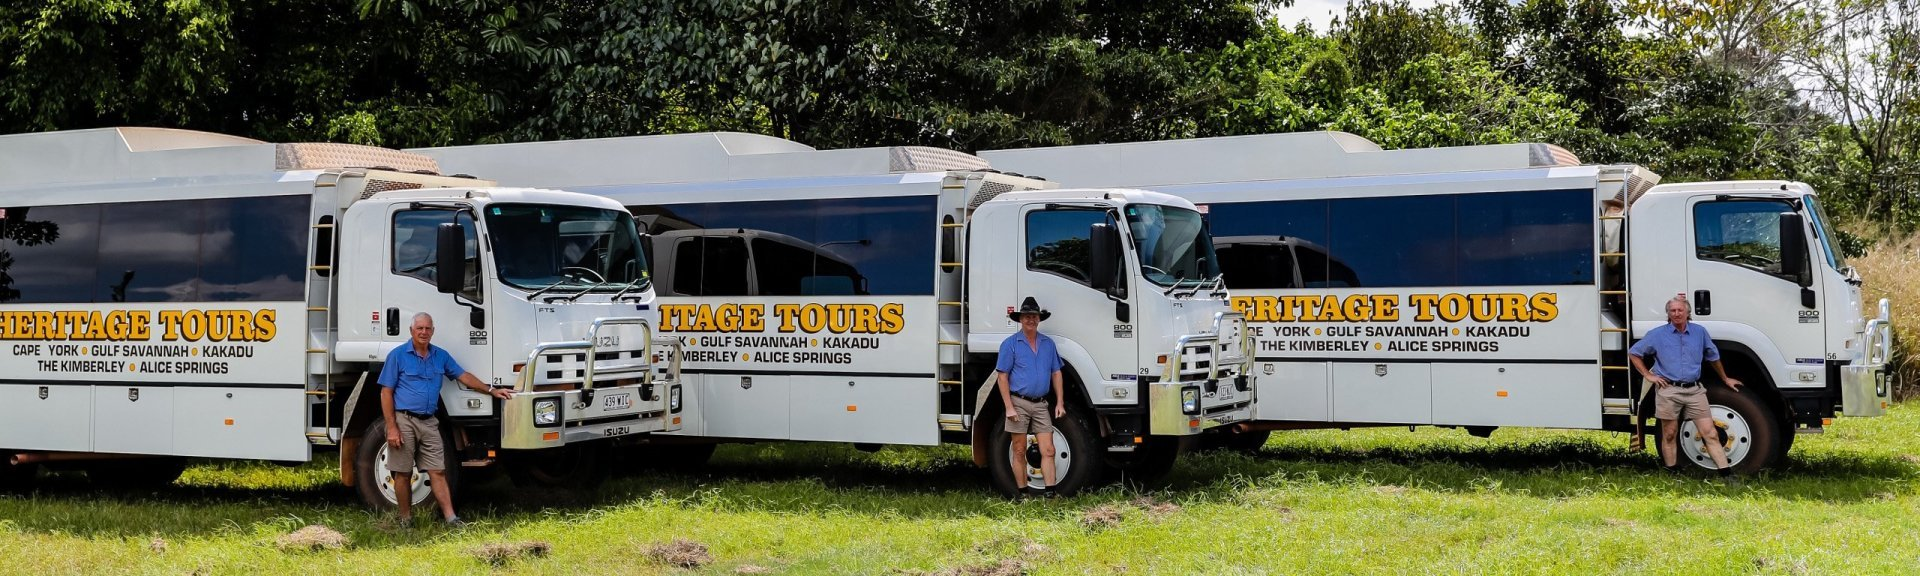 Heritage 4WD Safari buses. Photo: Gordon Greaves